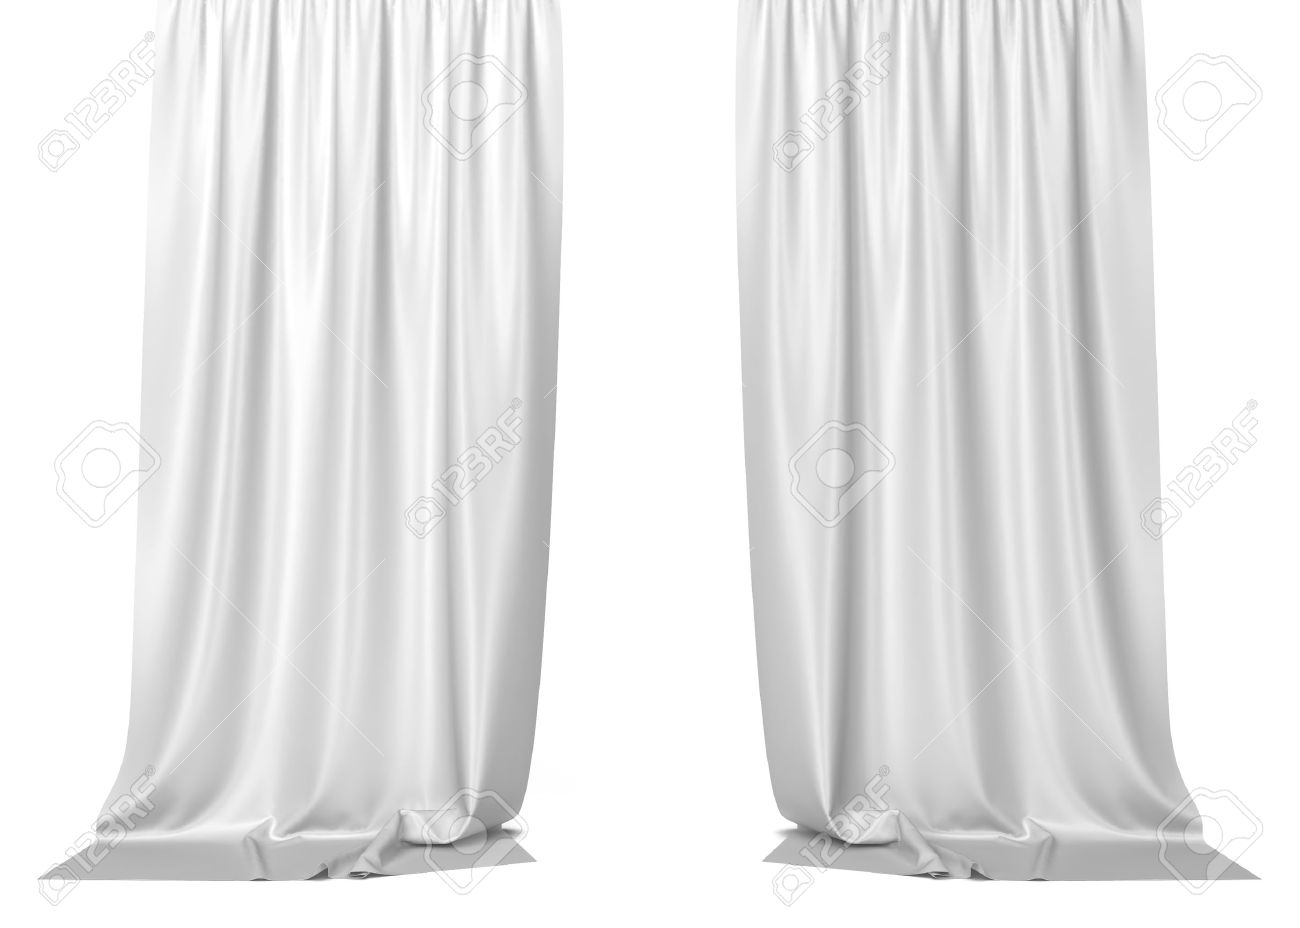 White Curtains 3d Illustration Isolated On Background Foto